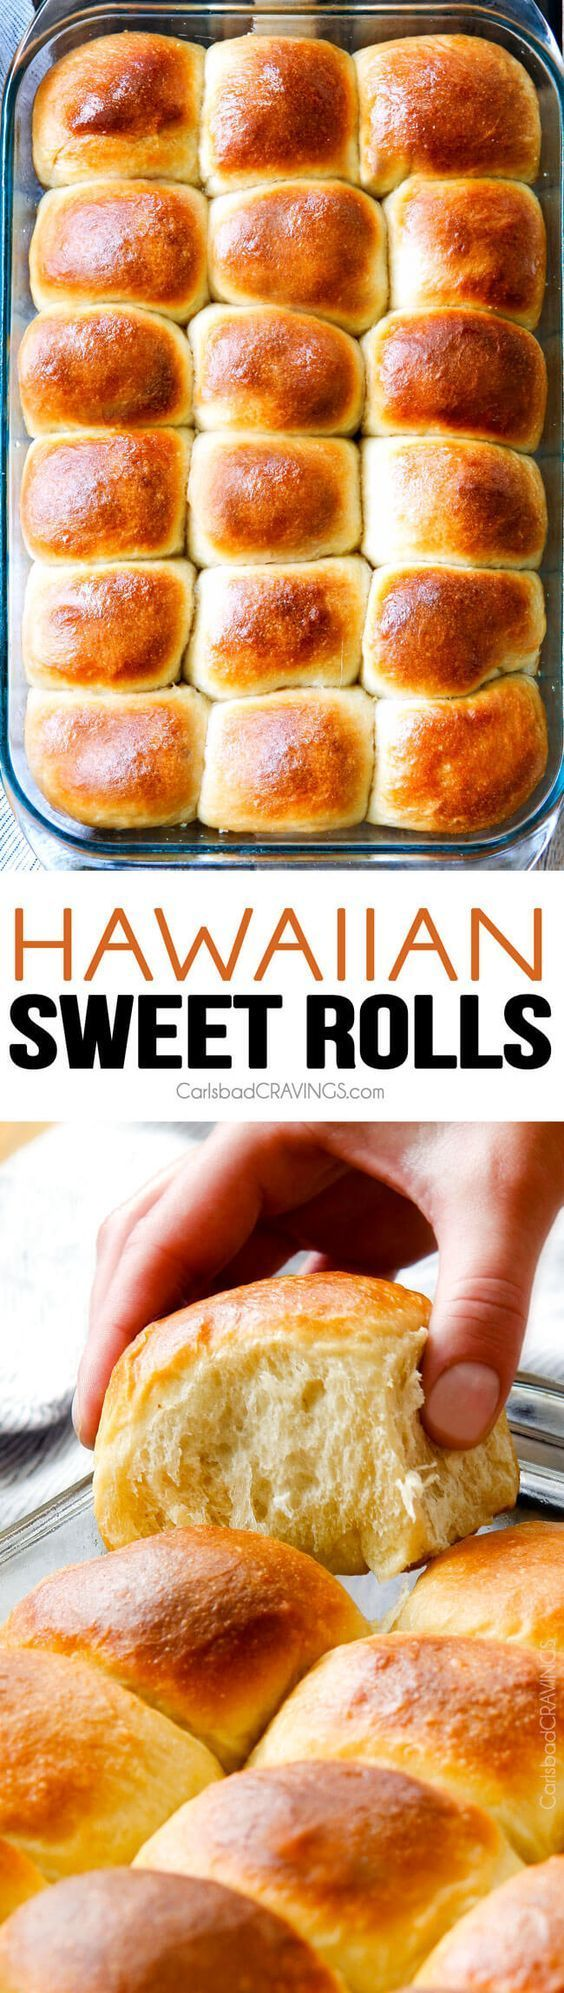 sweet, buttery, tropical Hawaiian Sweet Rolls are super soft and fluffy infused with pineapple juice and slathered in butter!  My family LOVES these!  perfect for sliders, potlucks and special occasion dinners like Thanksgiving!: